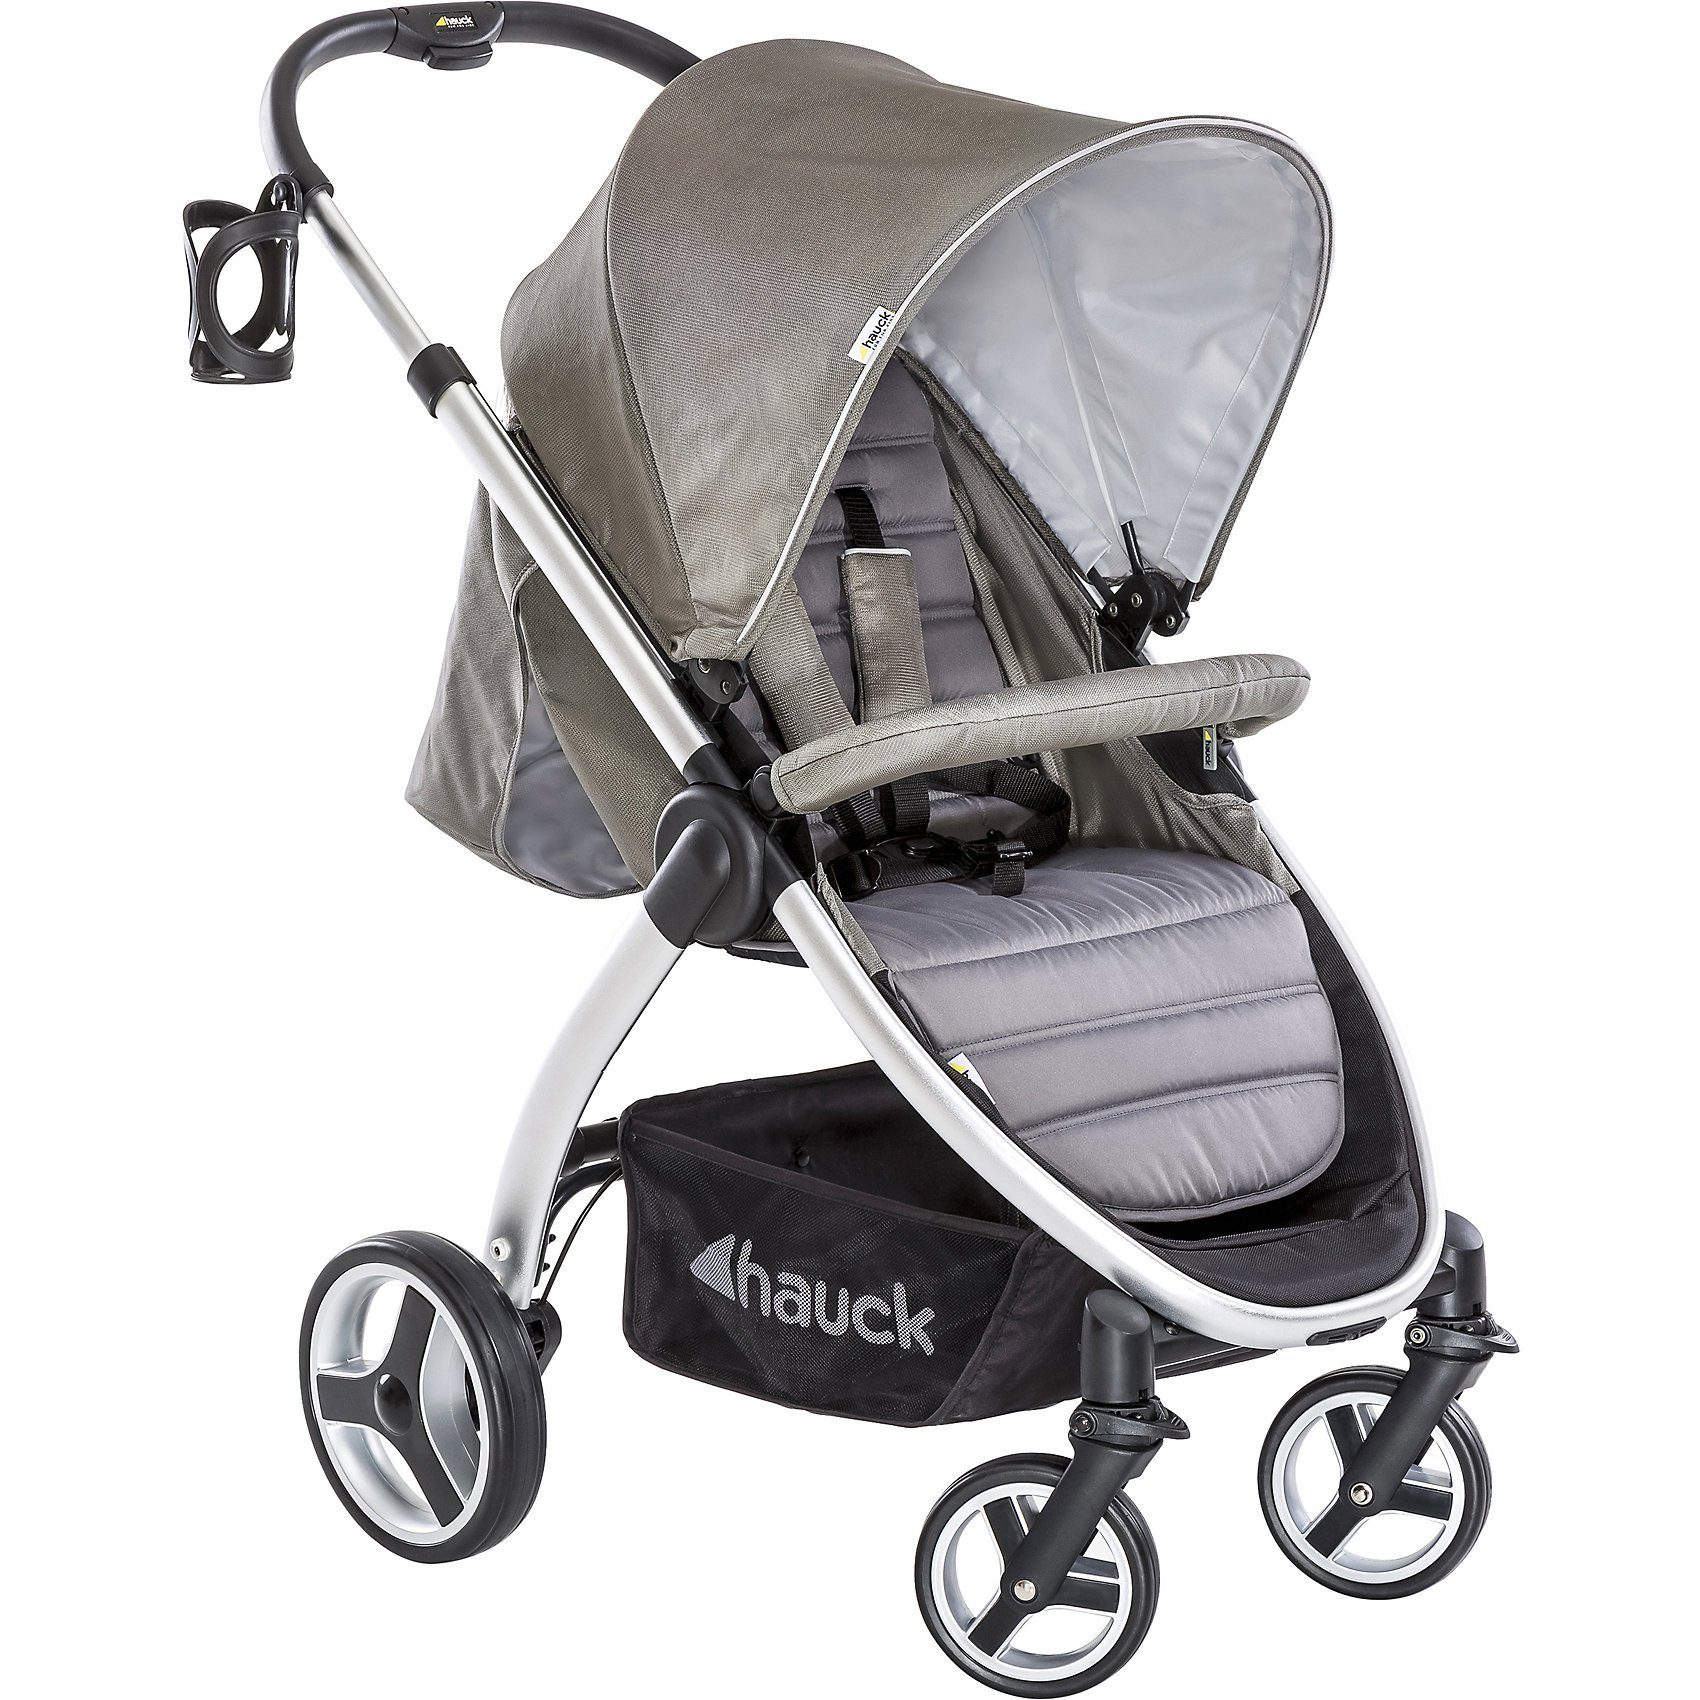 Hauck Buggy Lift Up 4, Charcoal